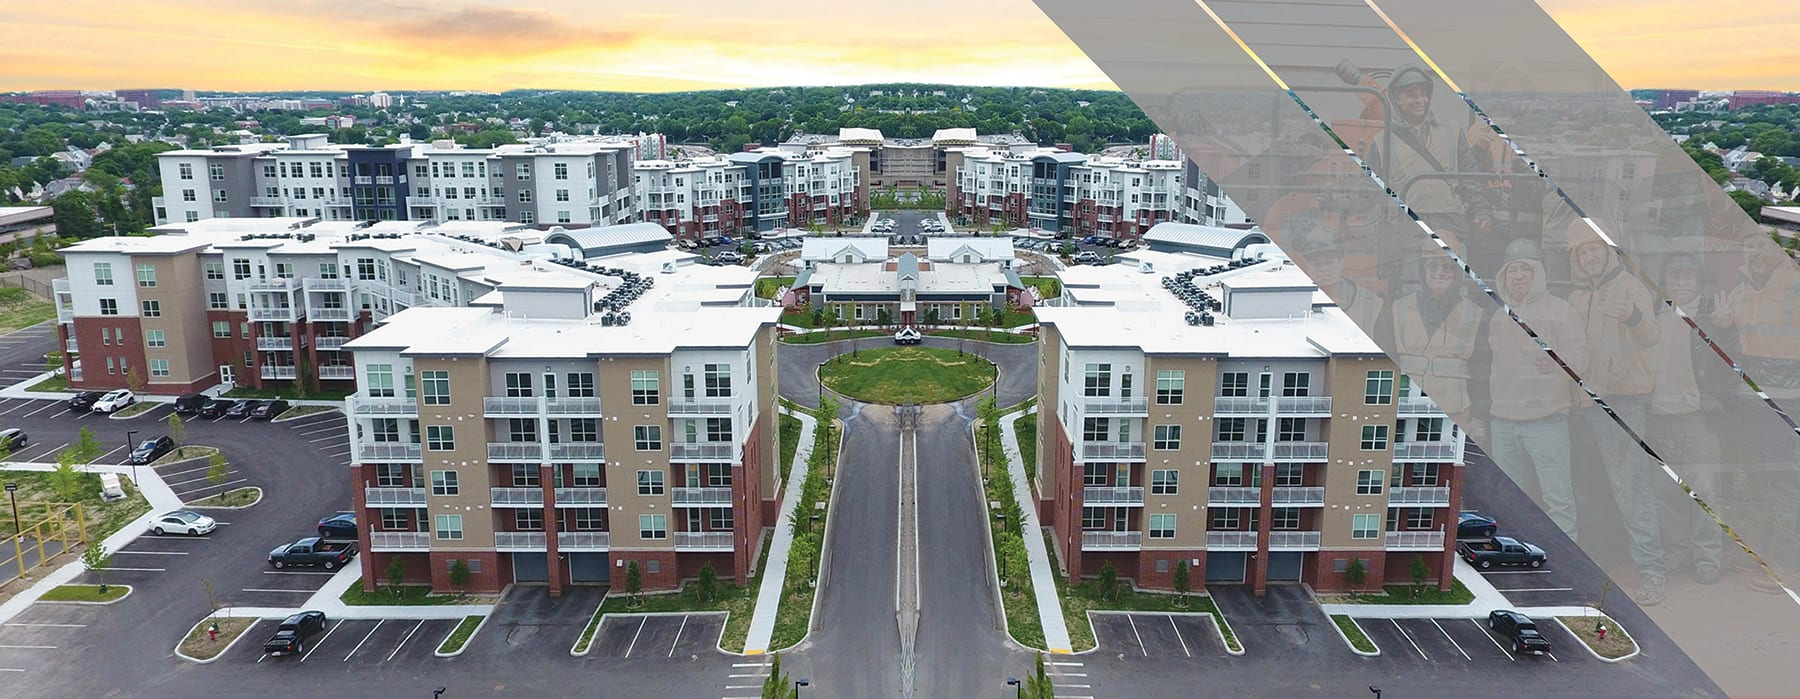 Aerial view of apartment complex with gray angled lines